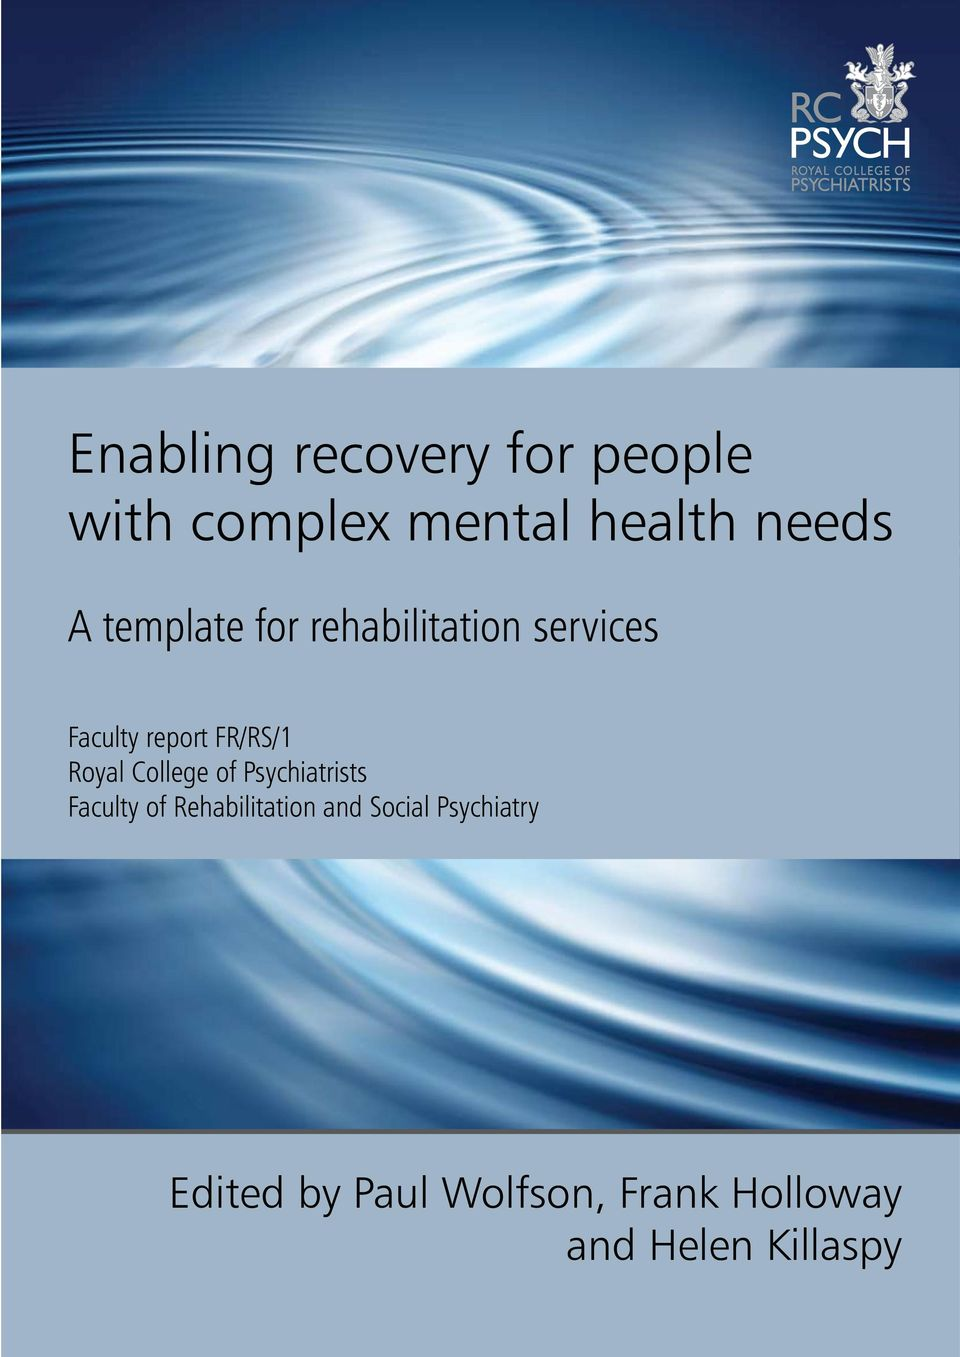 Royal College of Psychiatrists Faculty of Rehabilitation and